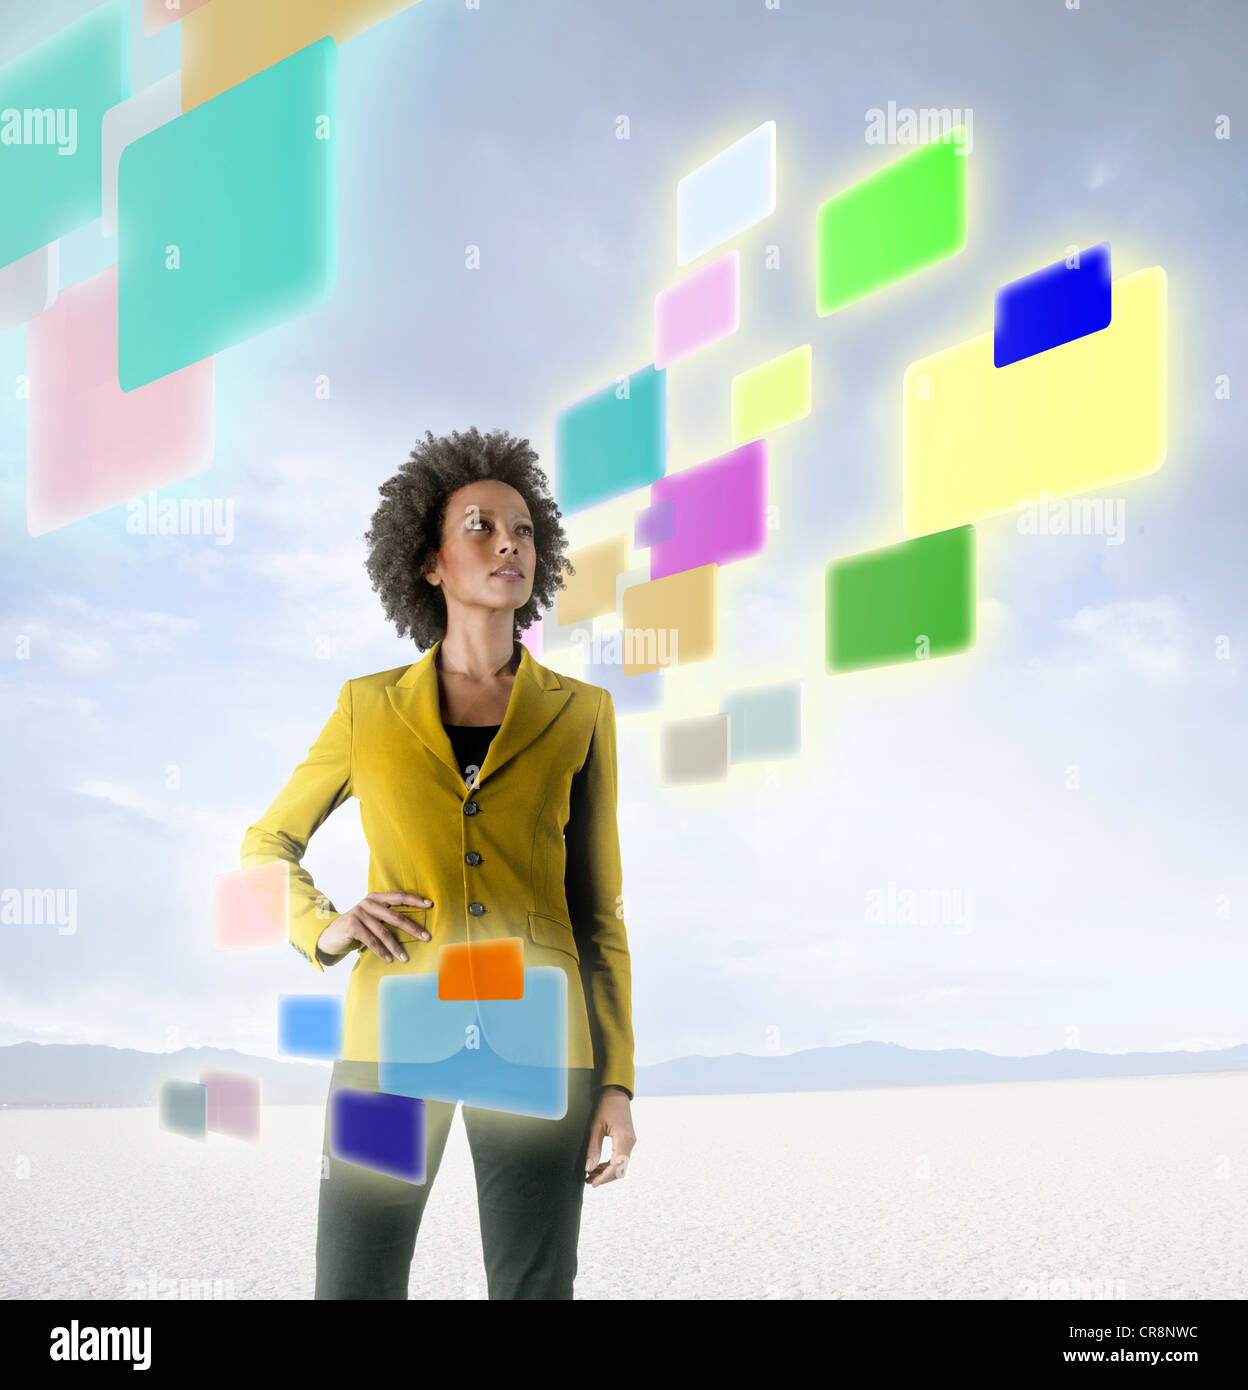 Businesswoman looking at holographic screens in desert - Stock Image